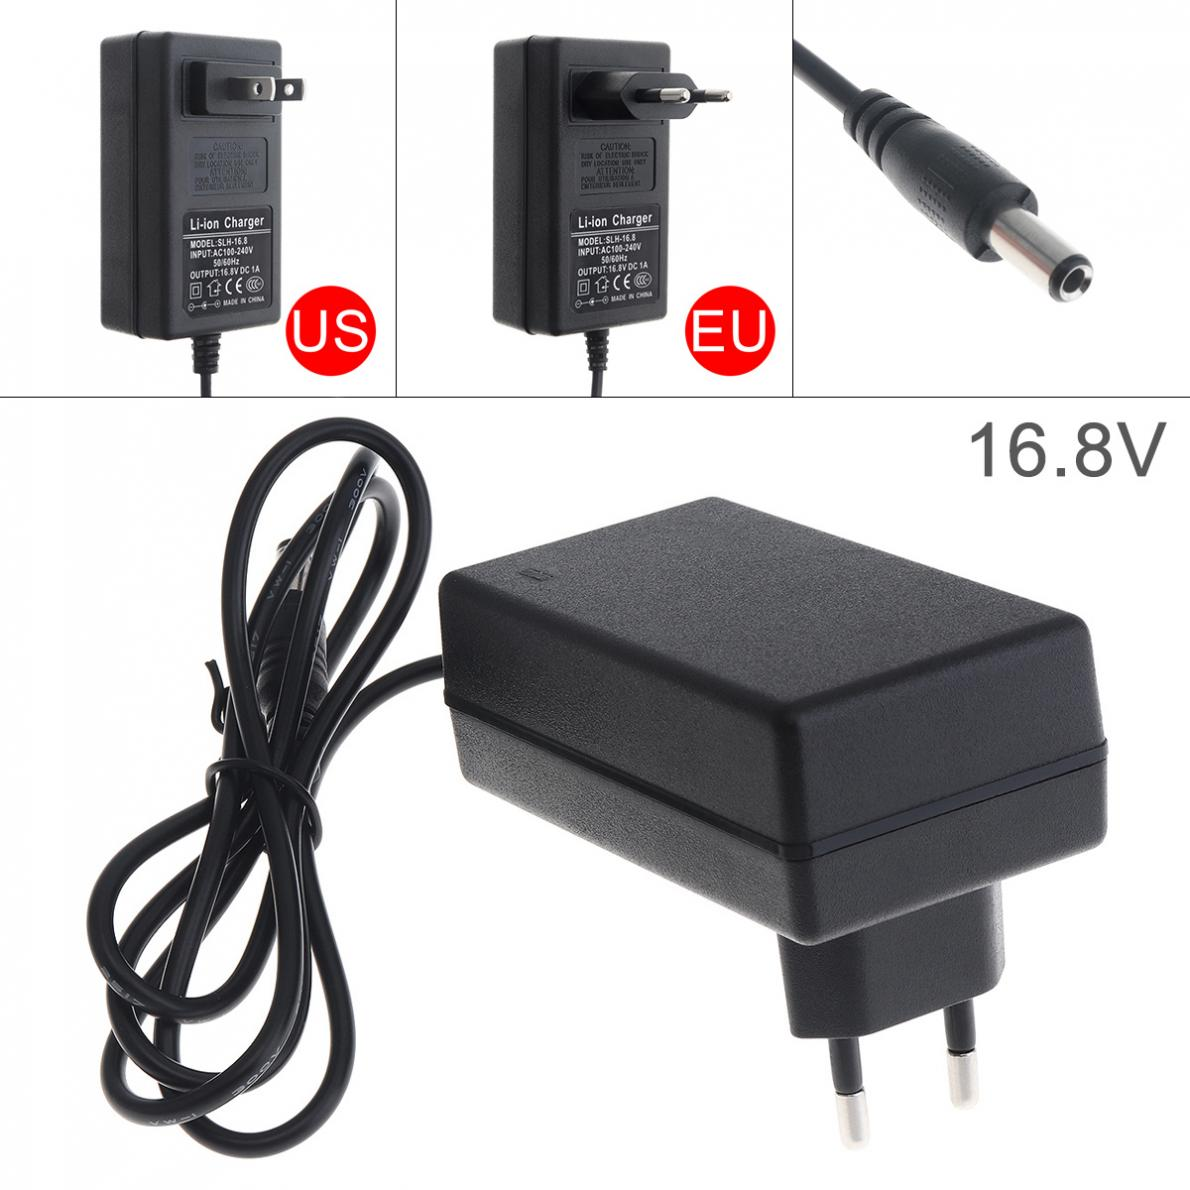 90cm  PVC 16.8V Power Adapter Charger With EU Plug And US Plug For Lithium Electric Drill / Electric Screwdriver